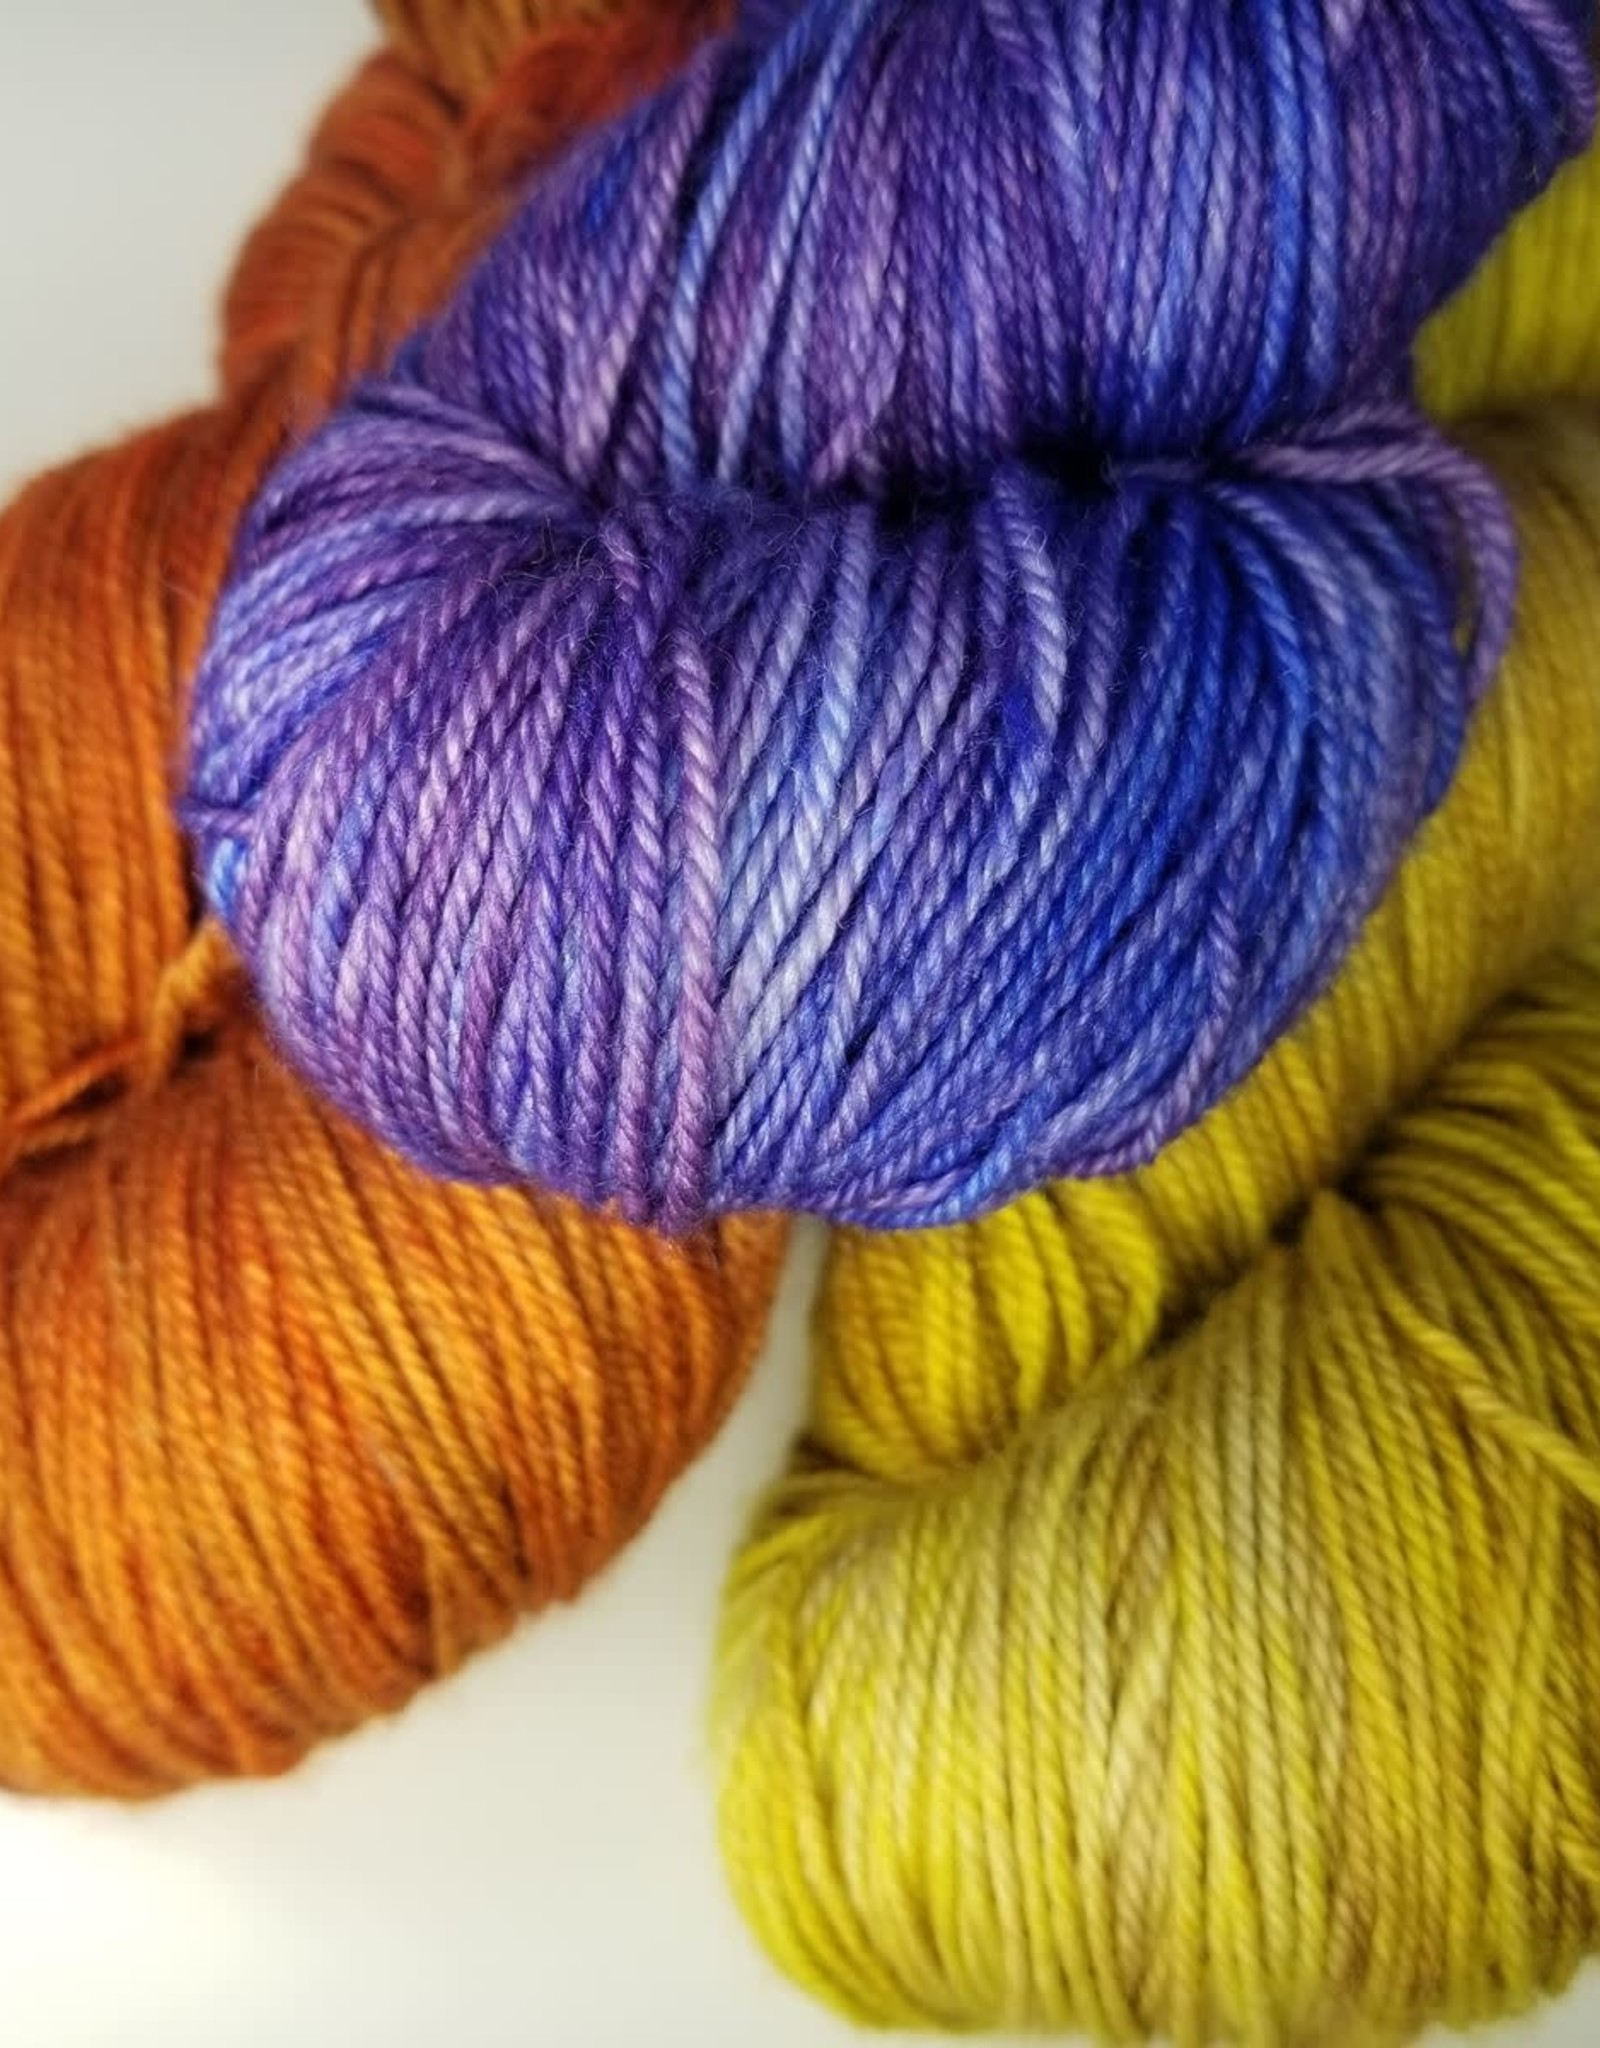 Palouse Yarn Co Seawall Storm Shawl Kit in Cashmere Squeeze